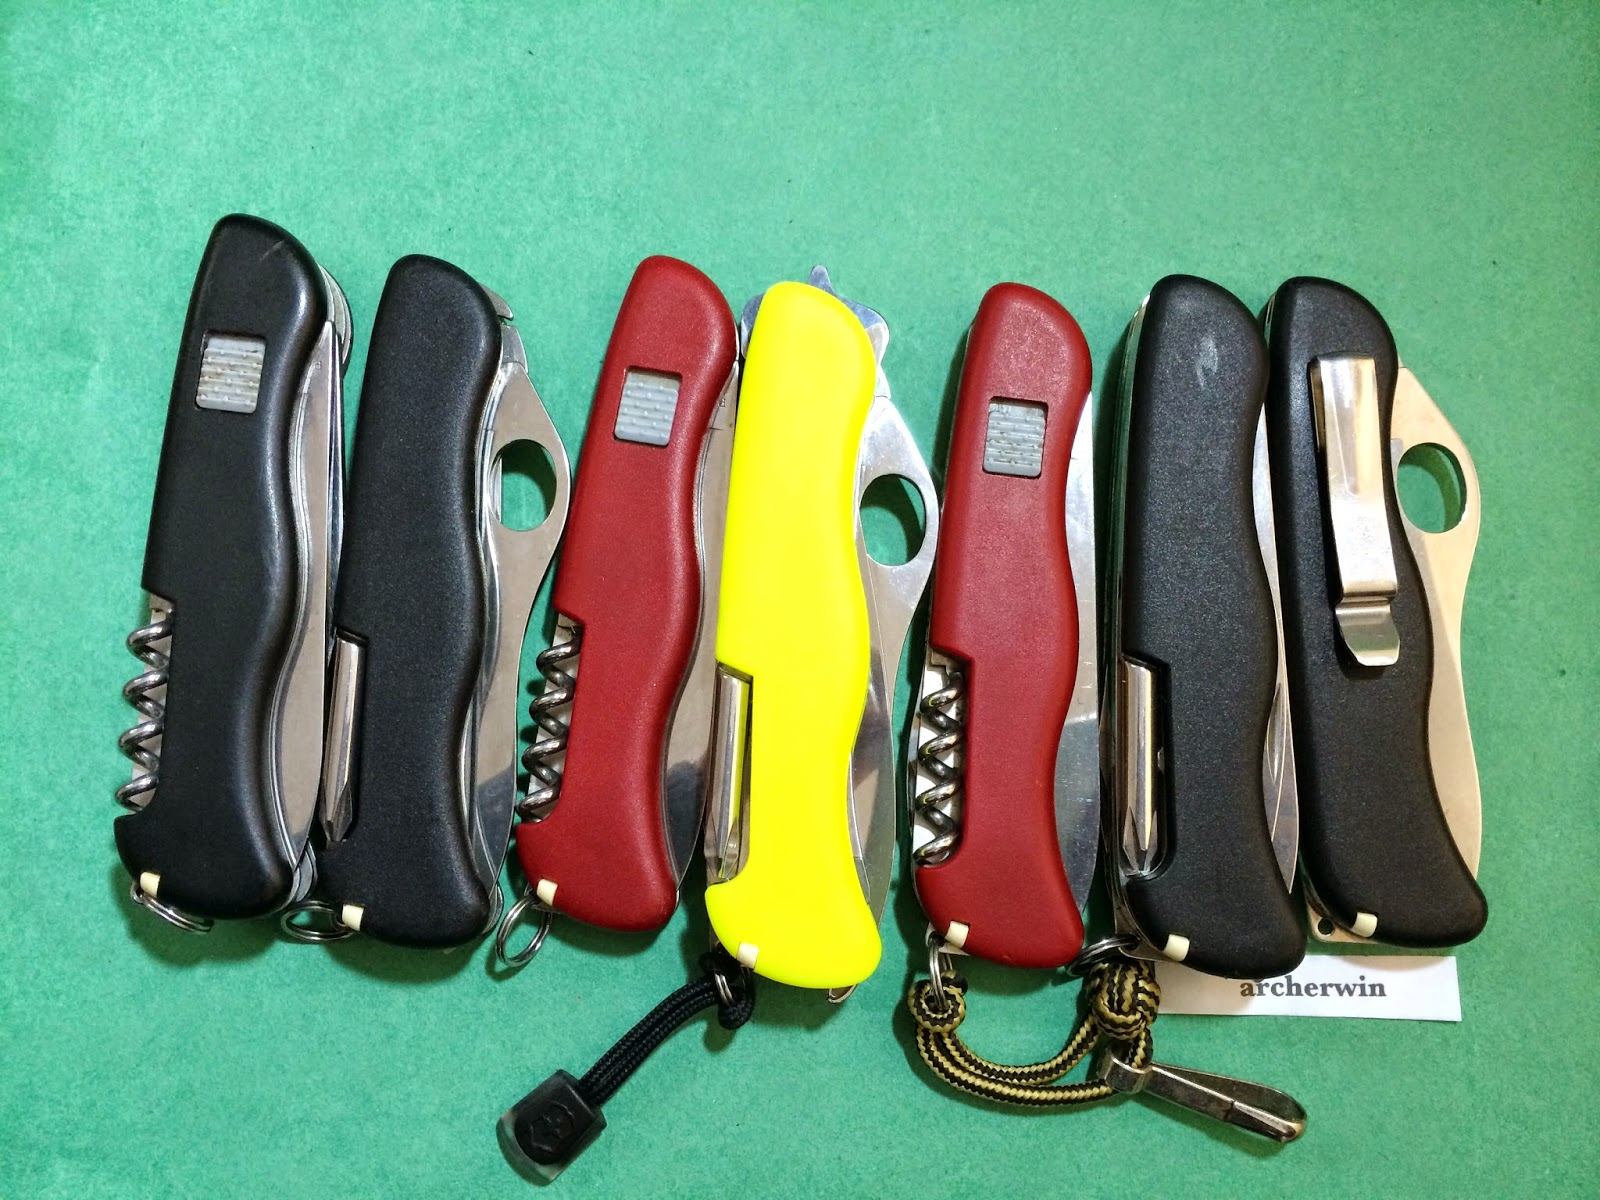 Archerwin S Swiss Army Knives Collection Victorinox 111mm